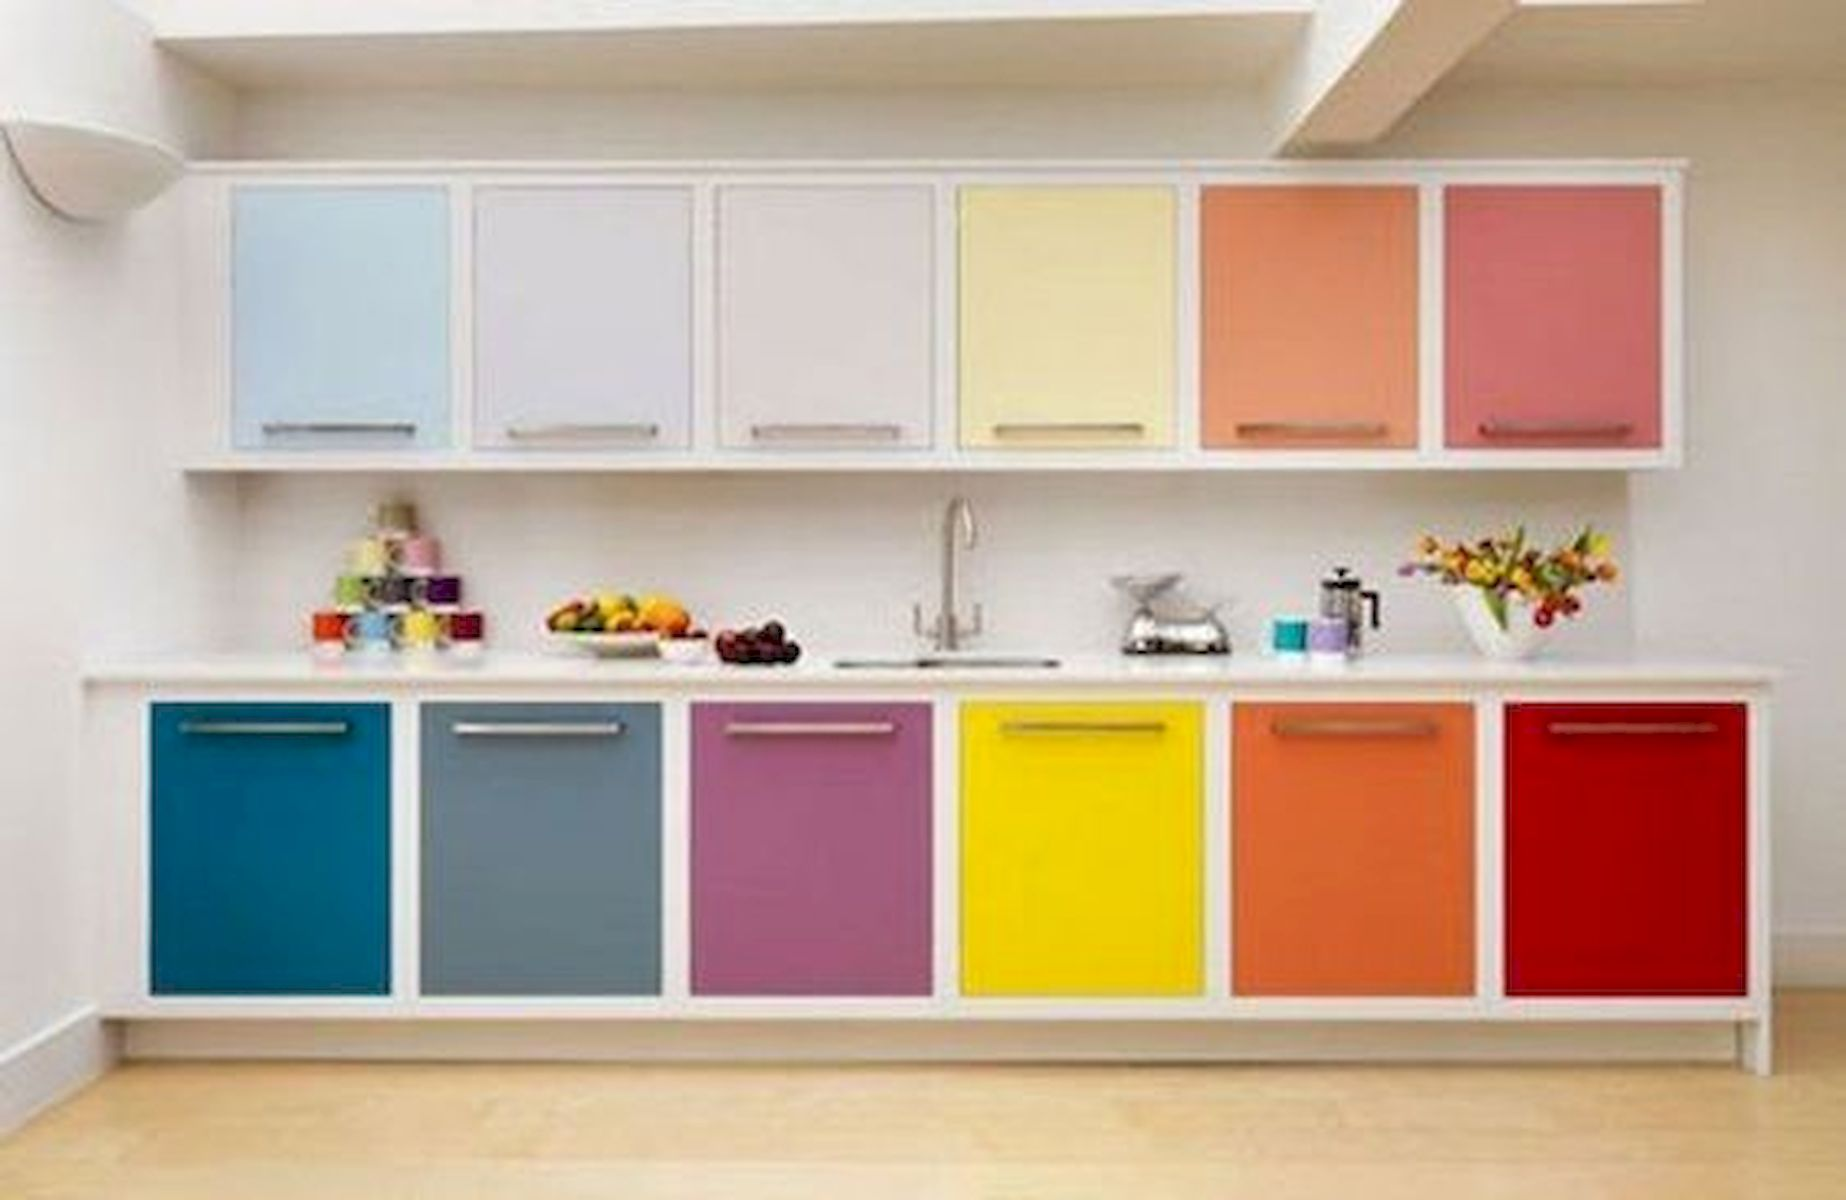 90 Amazing Kitchen Remodel And Decor Ideas With Colorful Design (85)